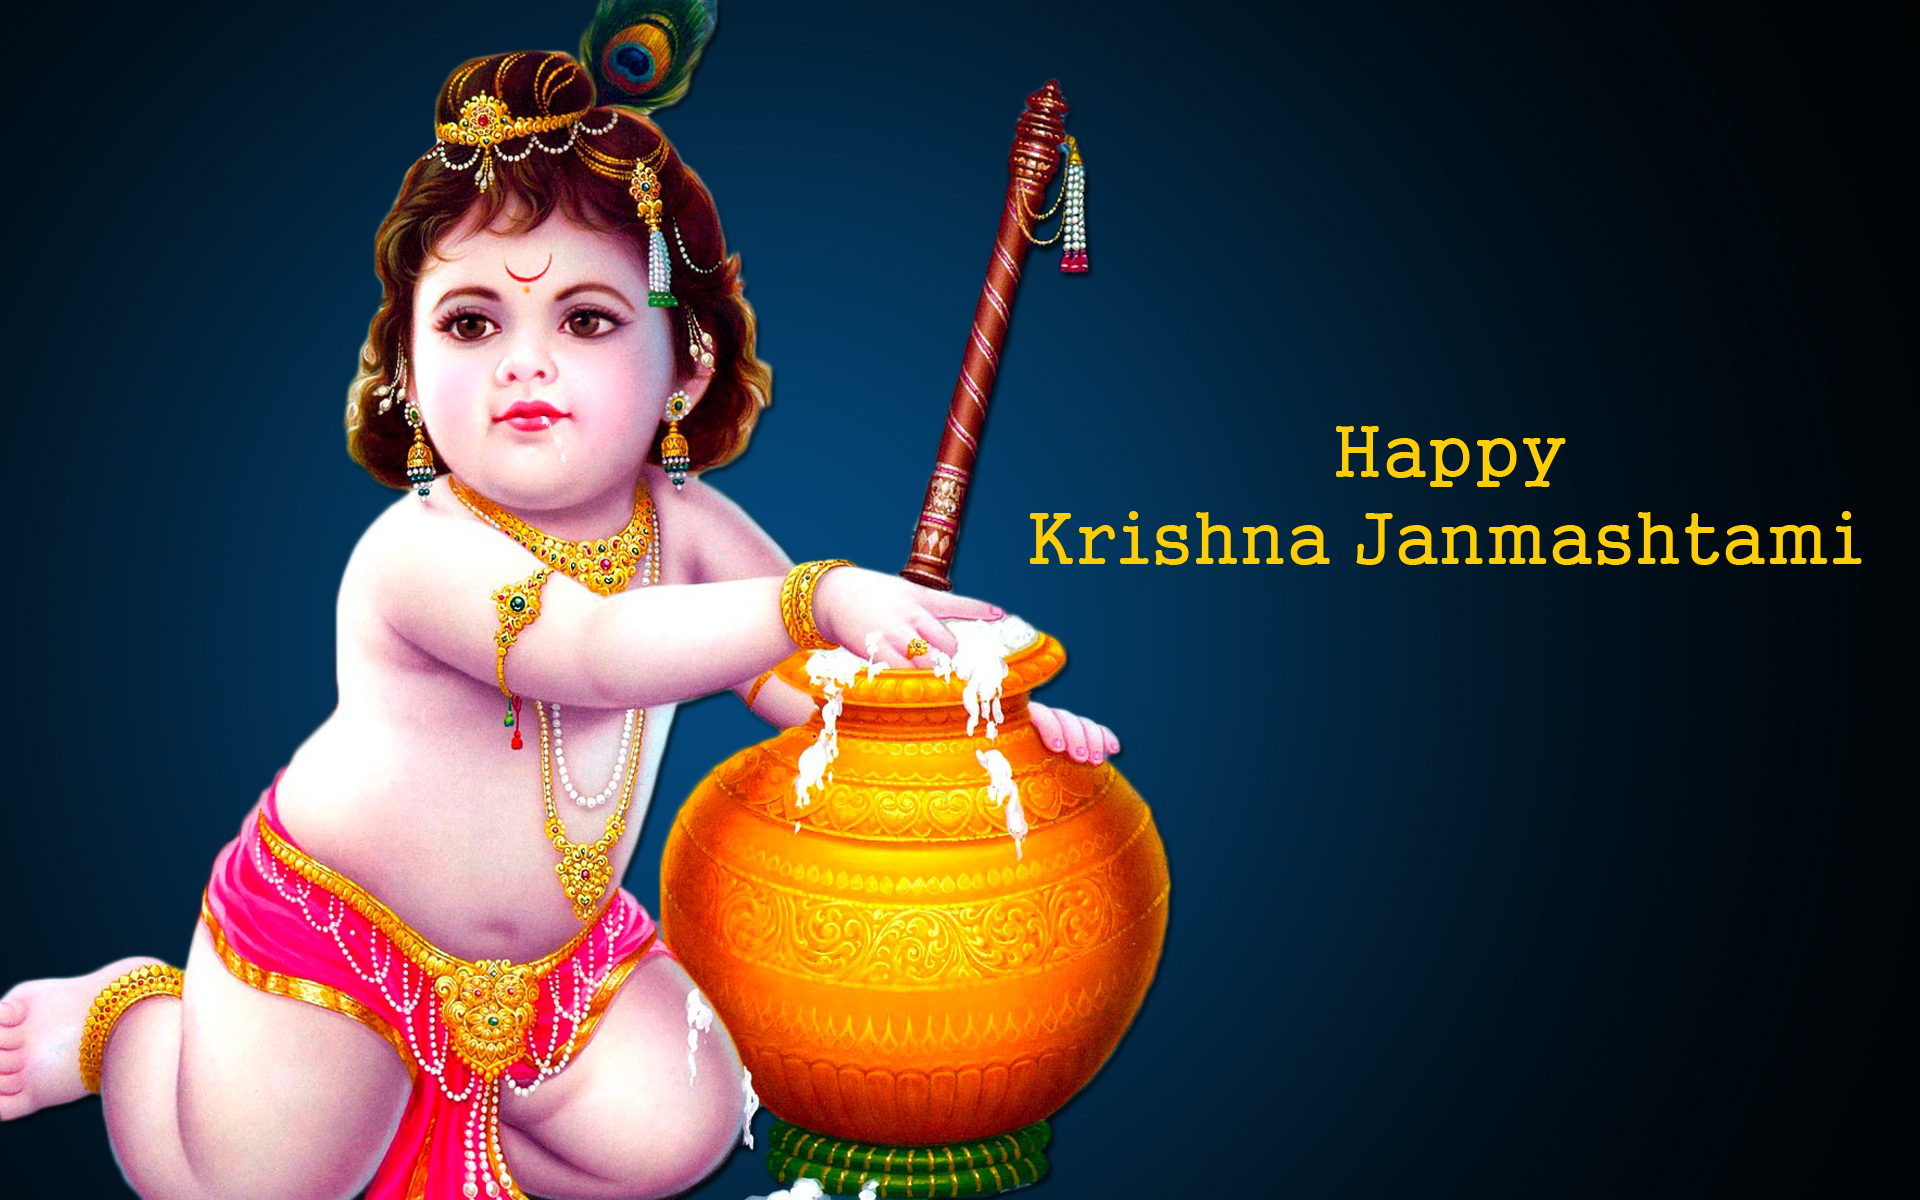 Happy Krishna Jayanti 2016 HD Wallpapers for free download